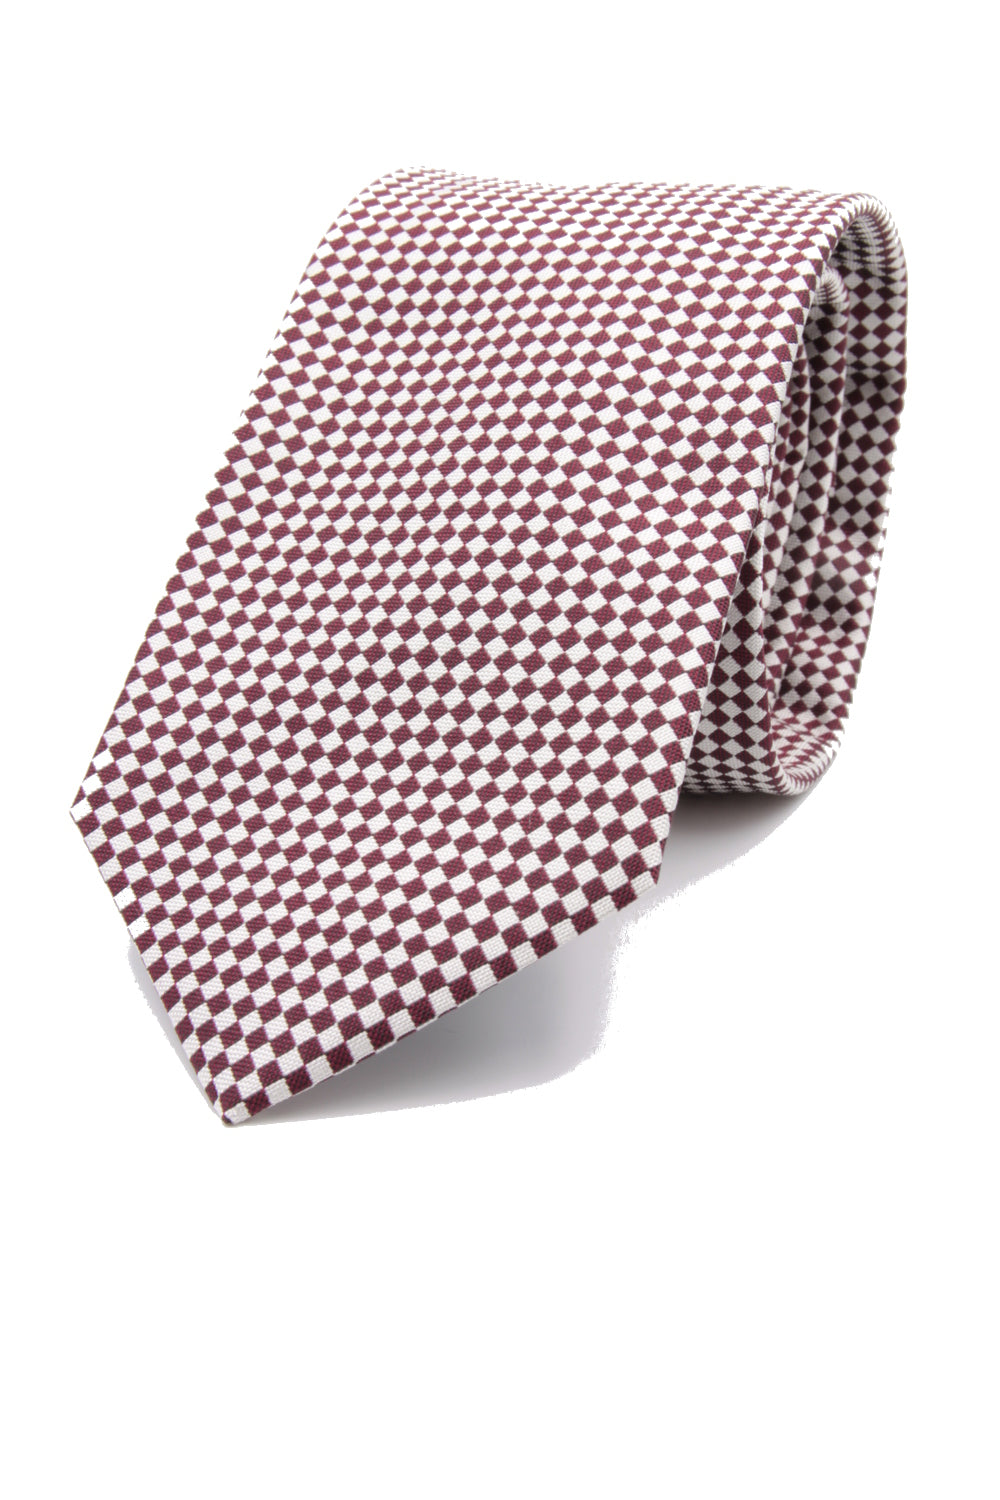 drake's Burgundy and white optical tie